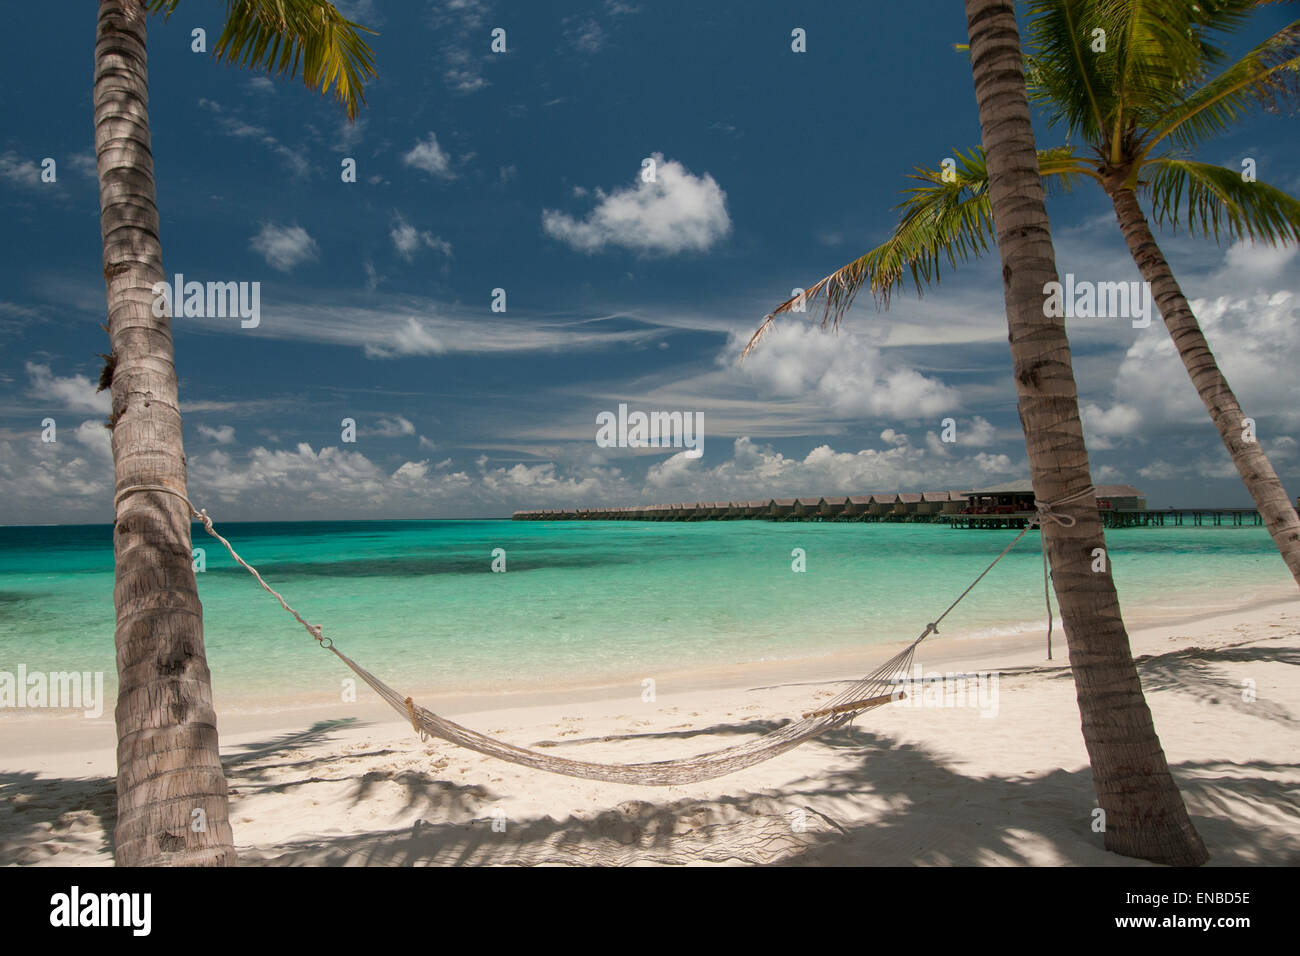 Empty hammock between palm trees on tropical beach in Maldives. Stock Photo